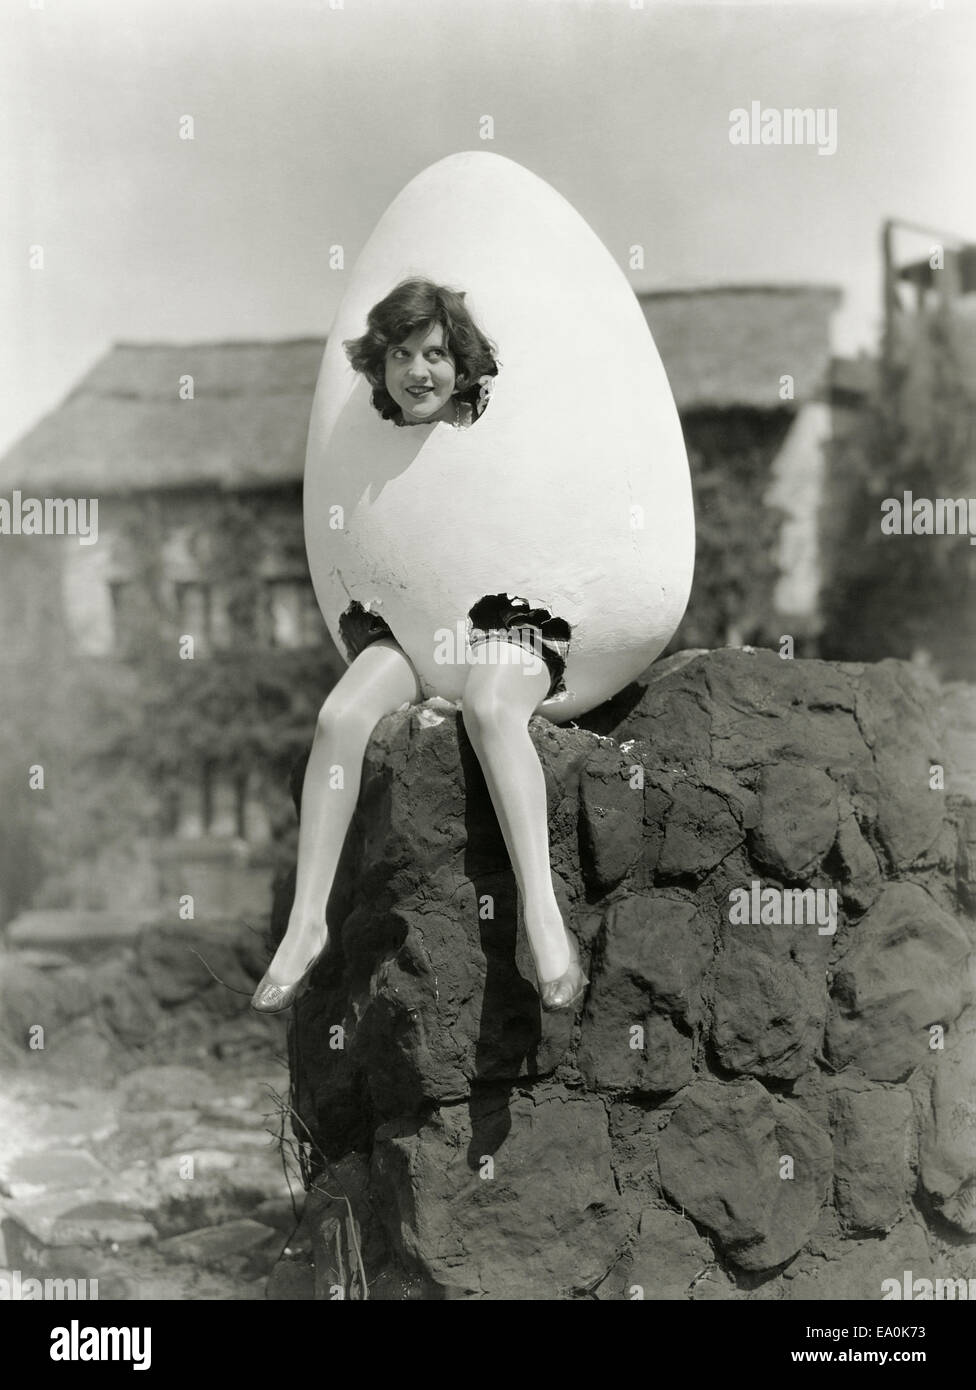 Partially hatched plan - Stock Image